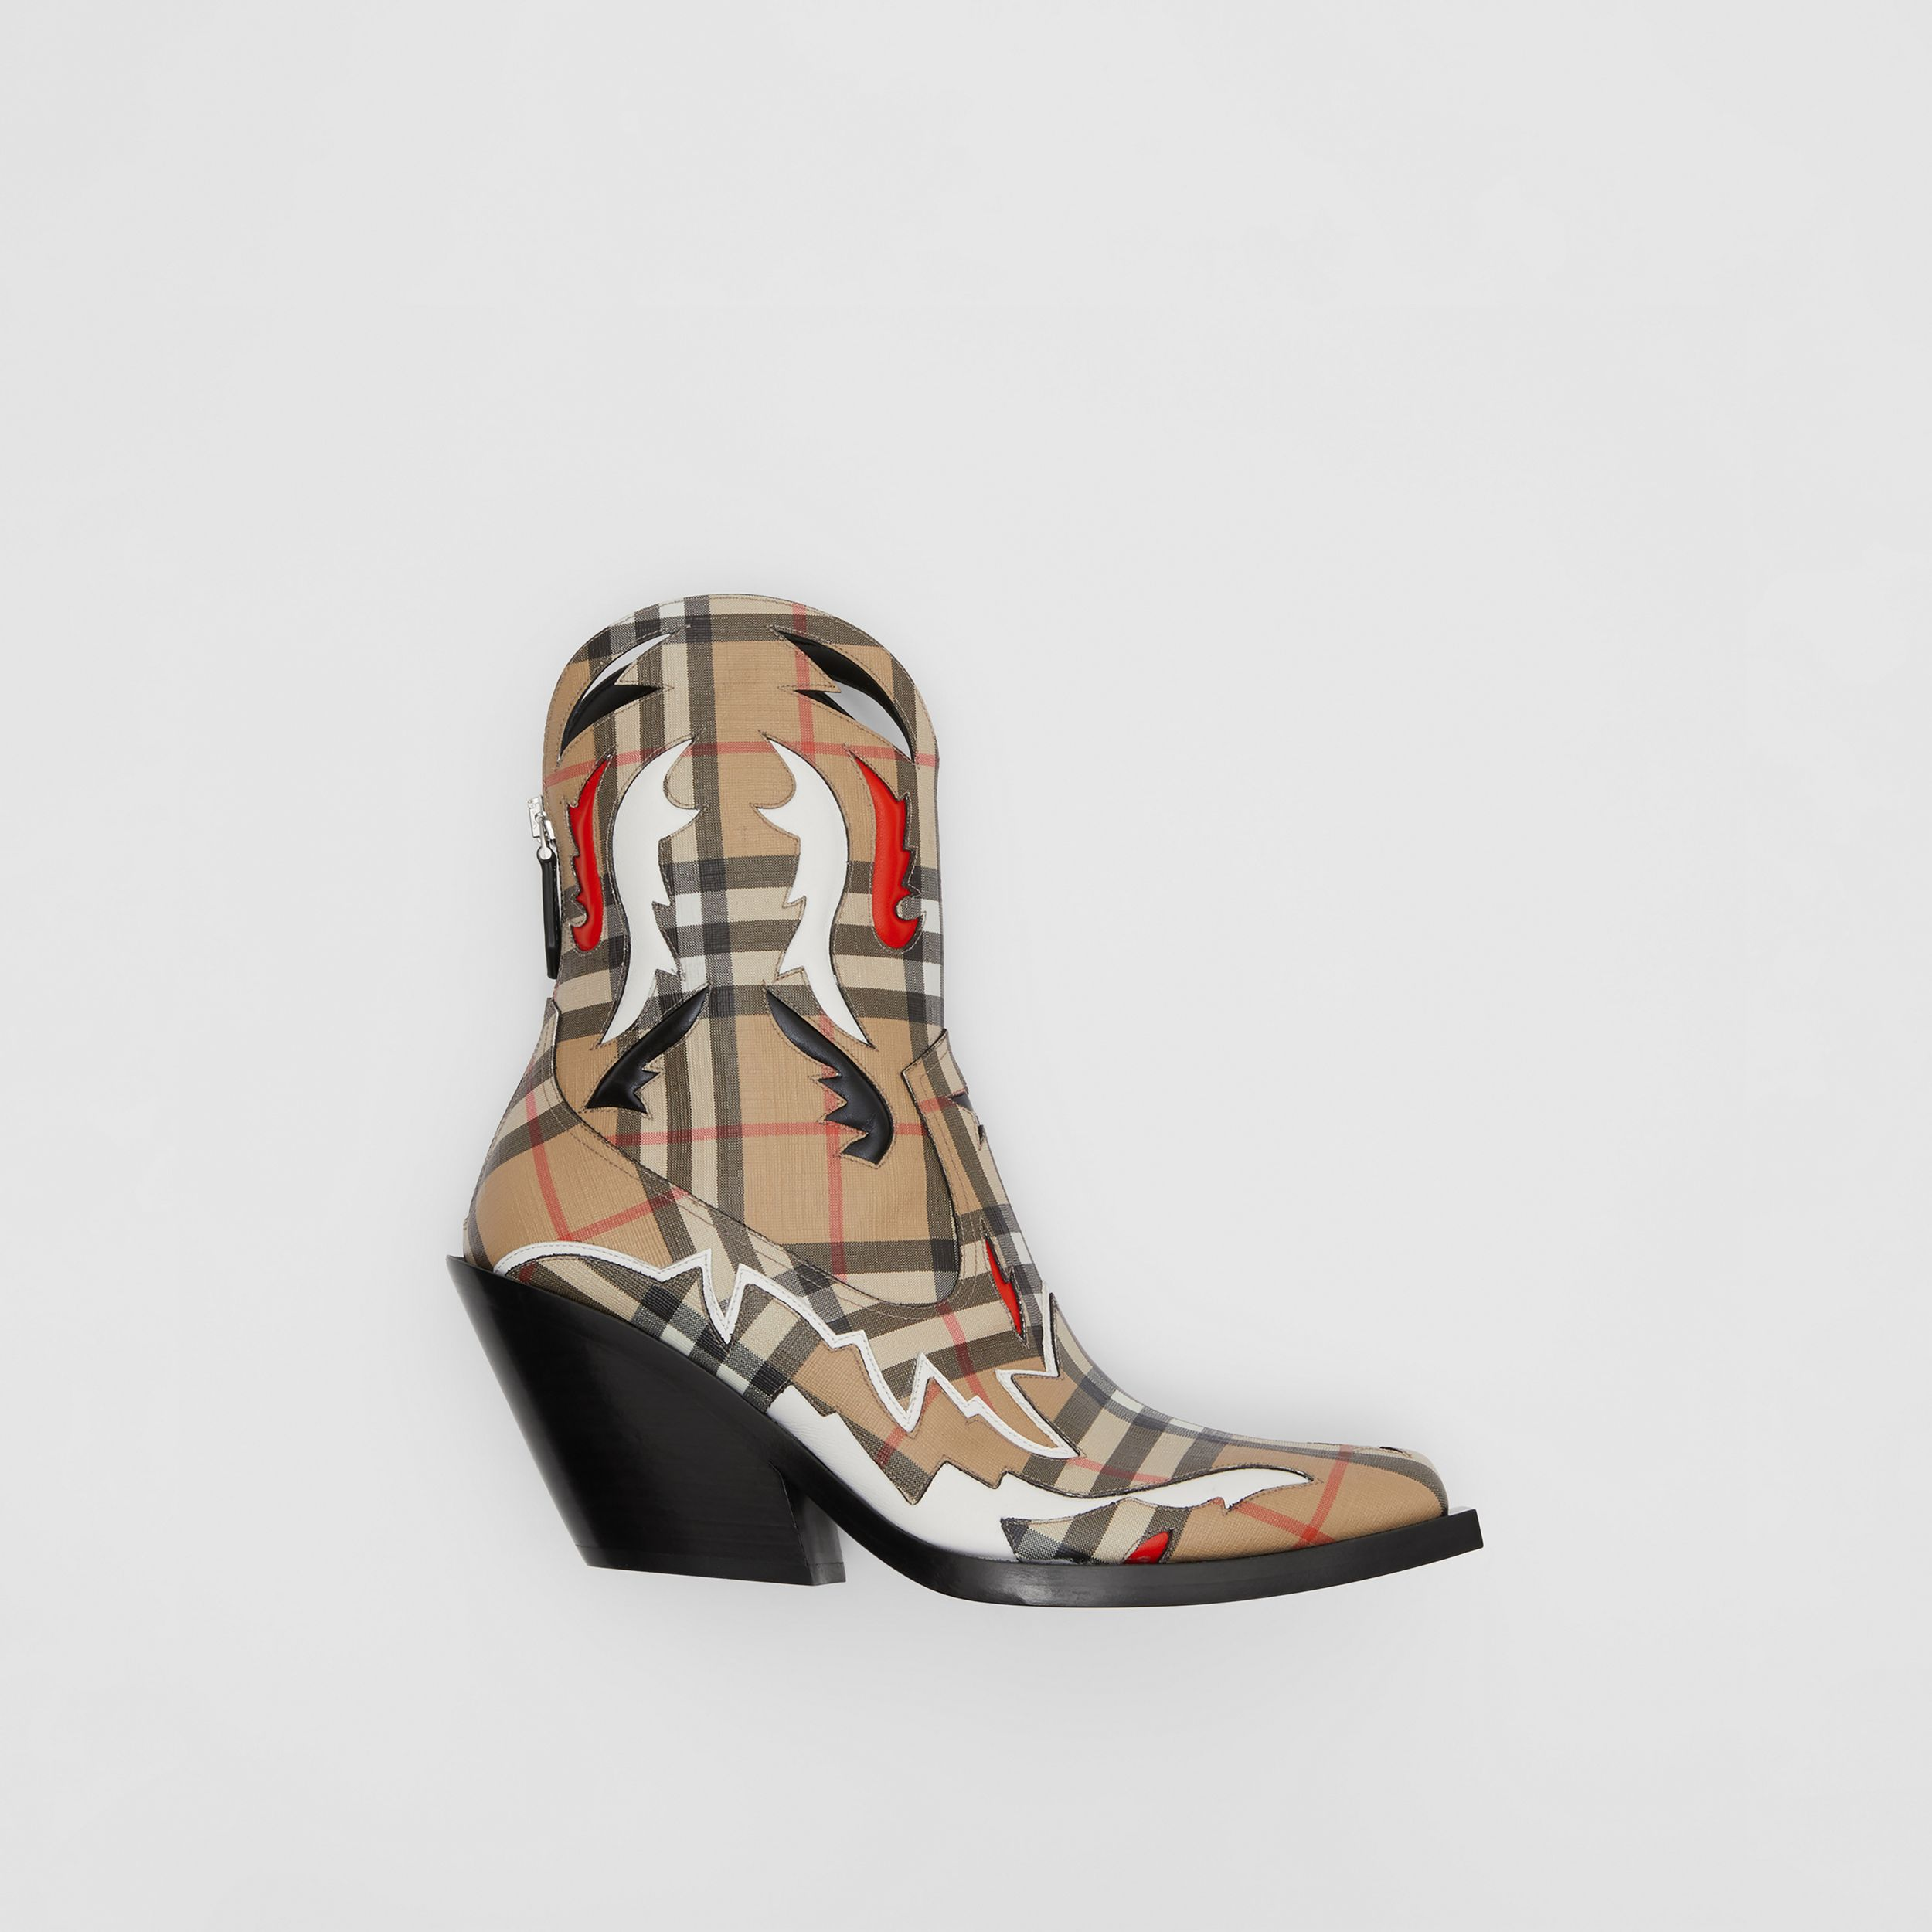 Topstitch Appliqué Vintage Check E-canvas Boots in Archive Beige - Women | Burberry United States - 1